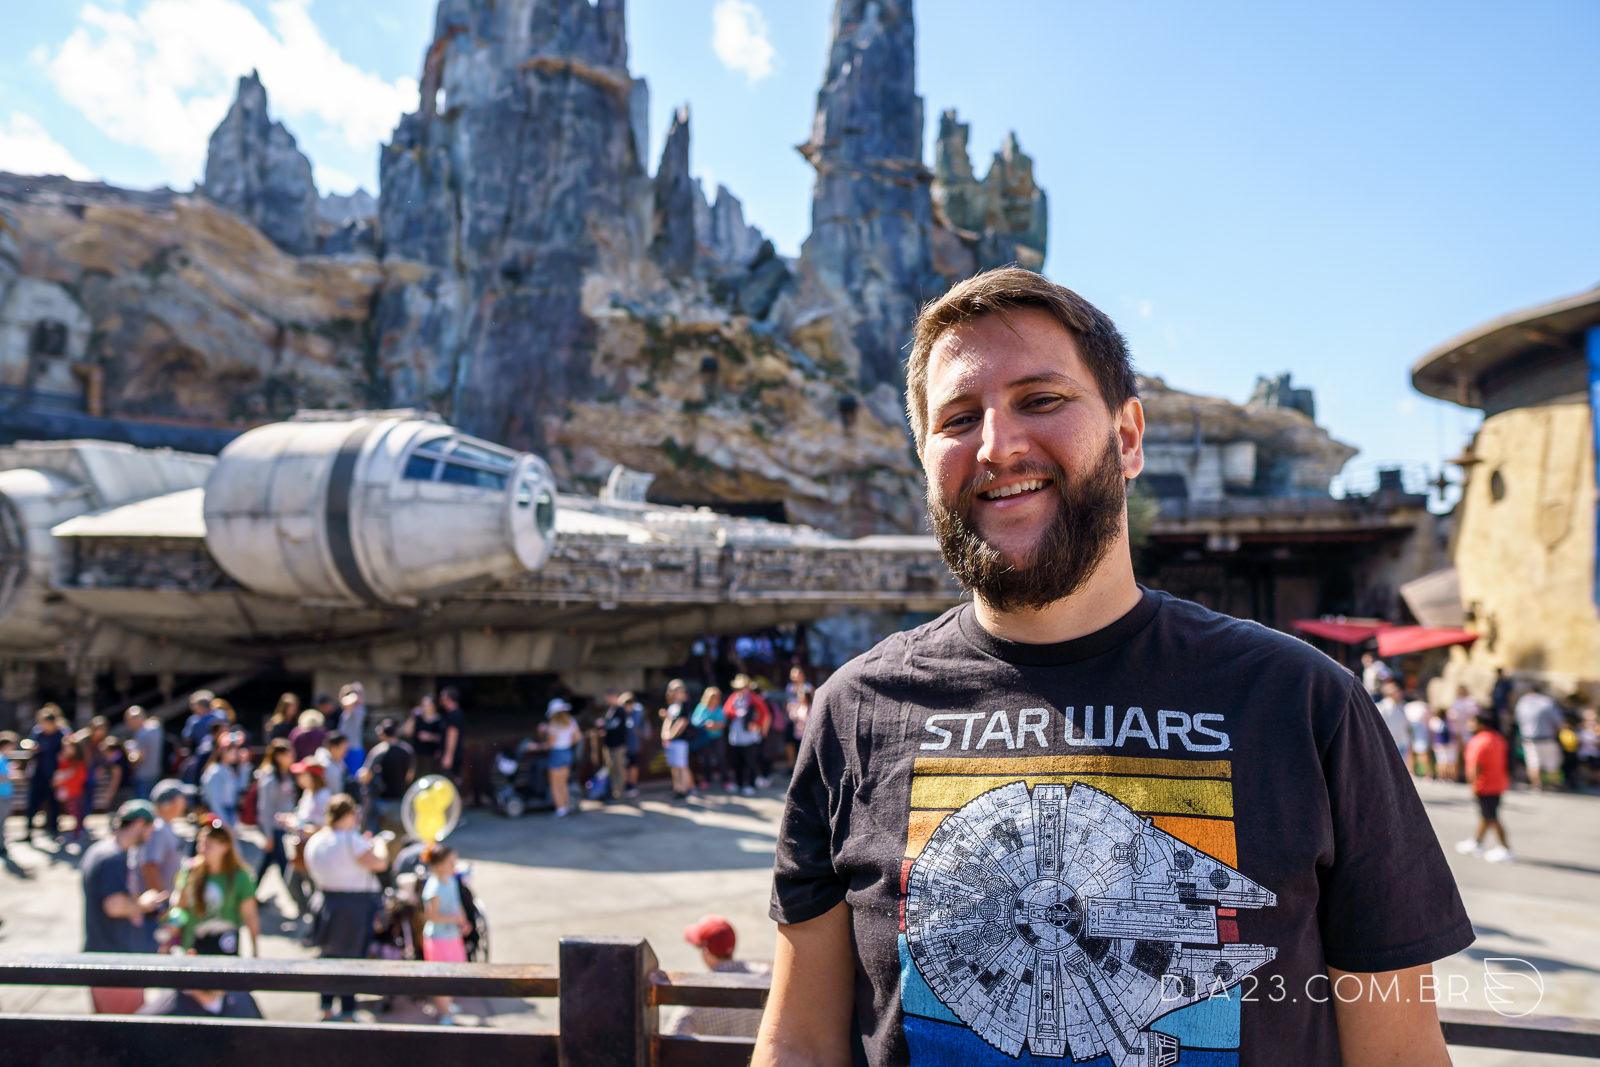 galaxys edge millennium falcon star wars hollywood studios